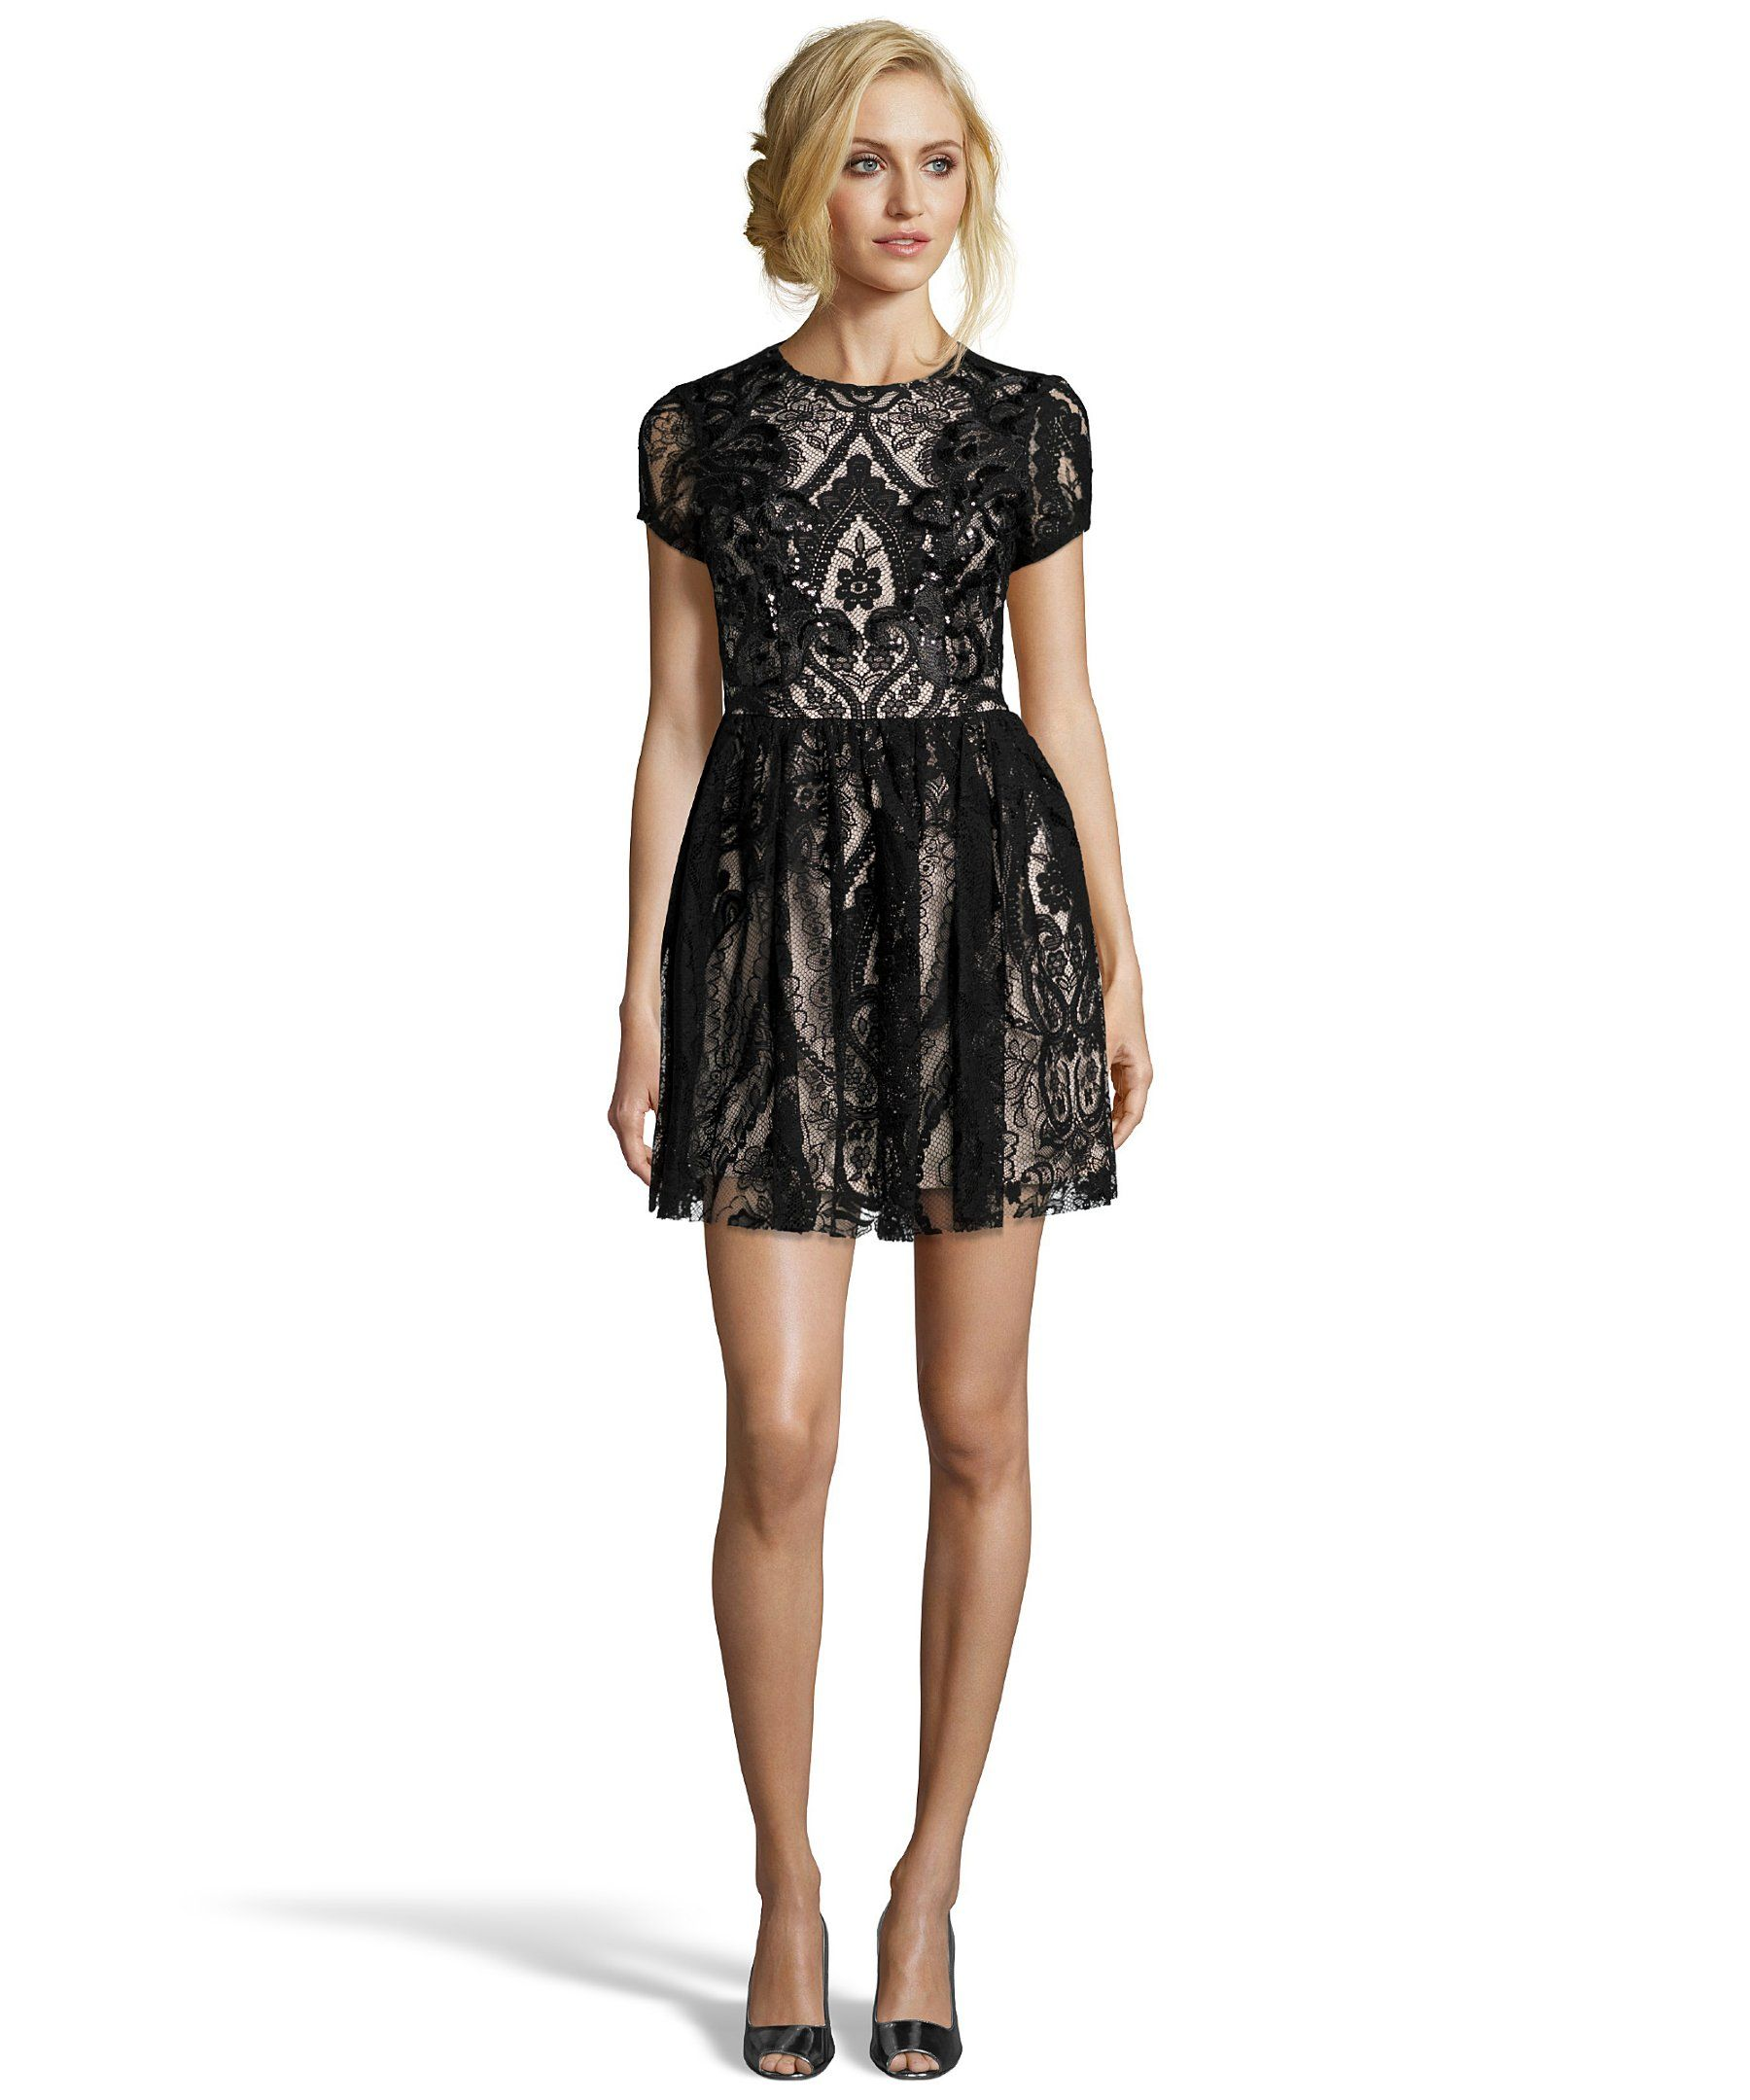 The wyatt black and nude sequined mesh lace fitandflare dress at